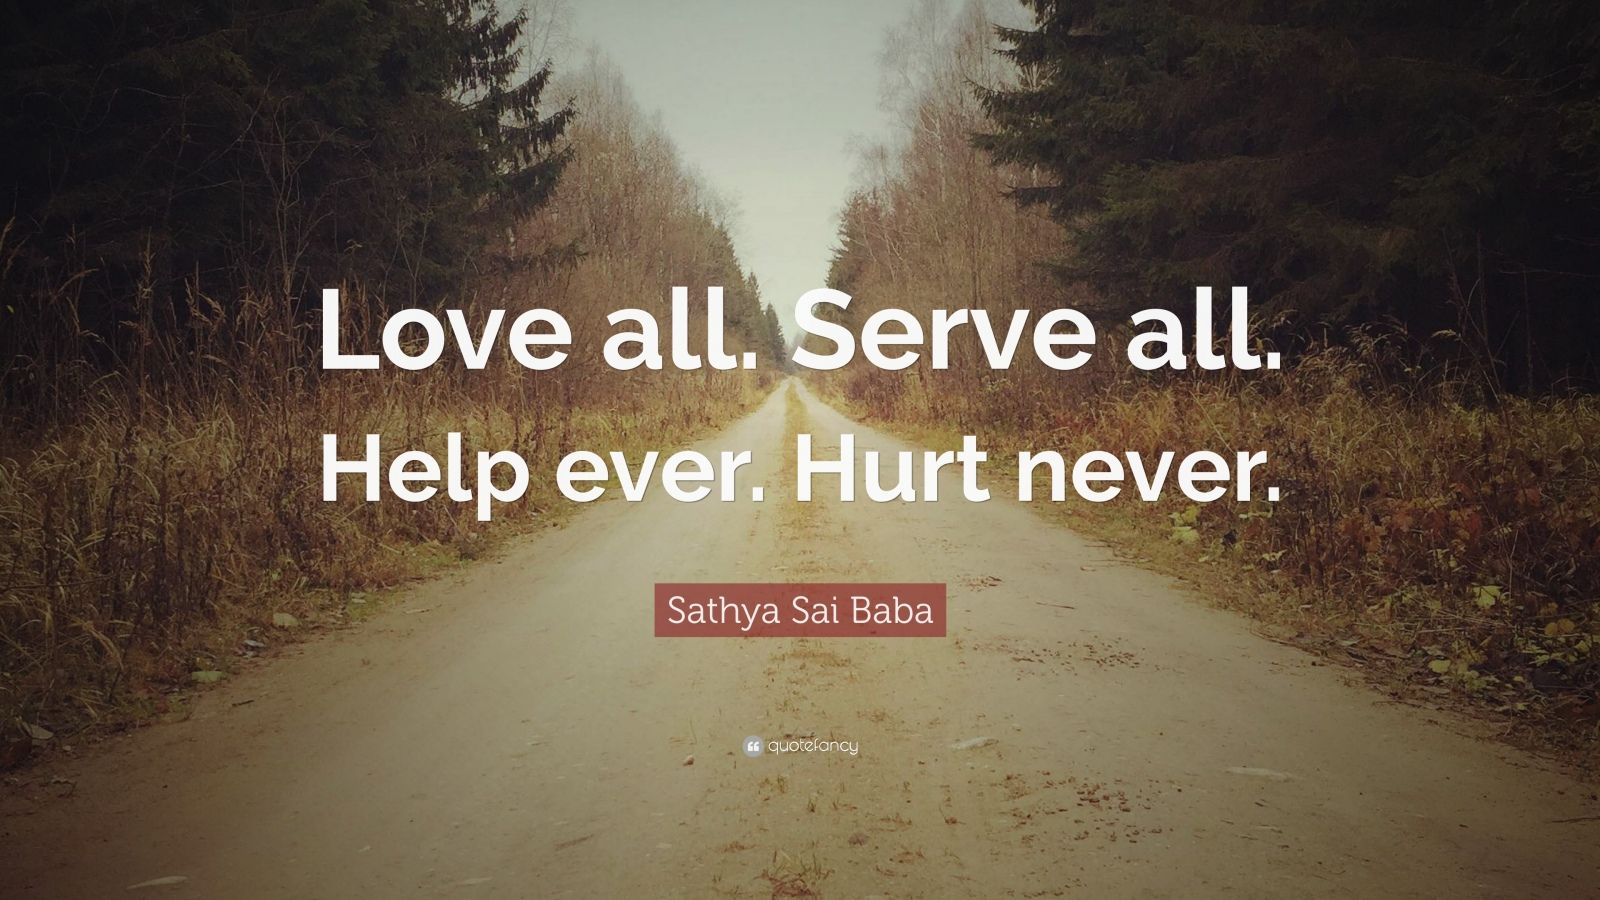 Knowledge Quotes Wallpapers 4k Sathya Sai Baba Quote Love All Serve All Help Ever